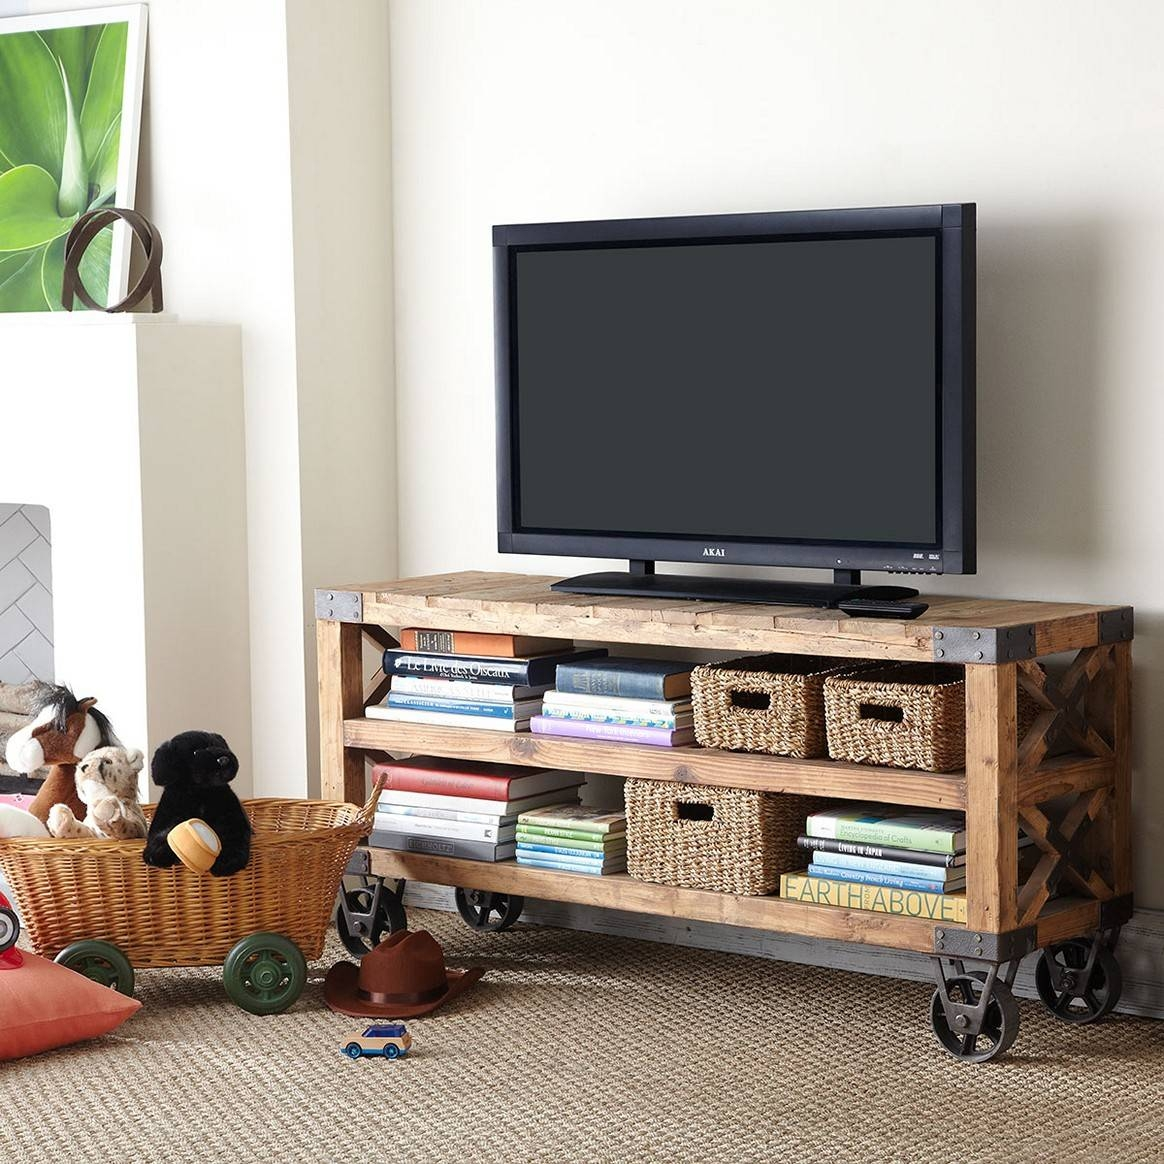 Tv Stands For Bedroom Dressers Ideas With Small Apartment Picture throughout Tv Stands With Storage Baskets (Image 15 of 15)